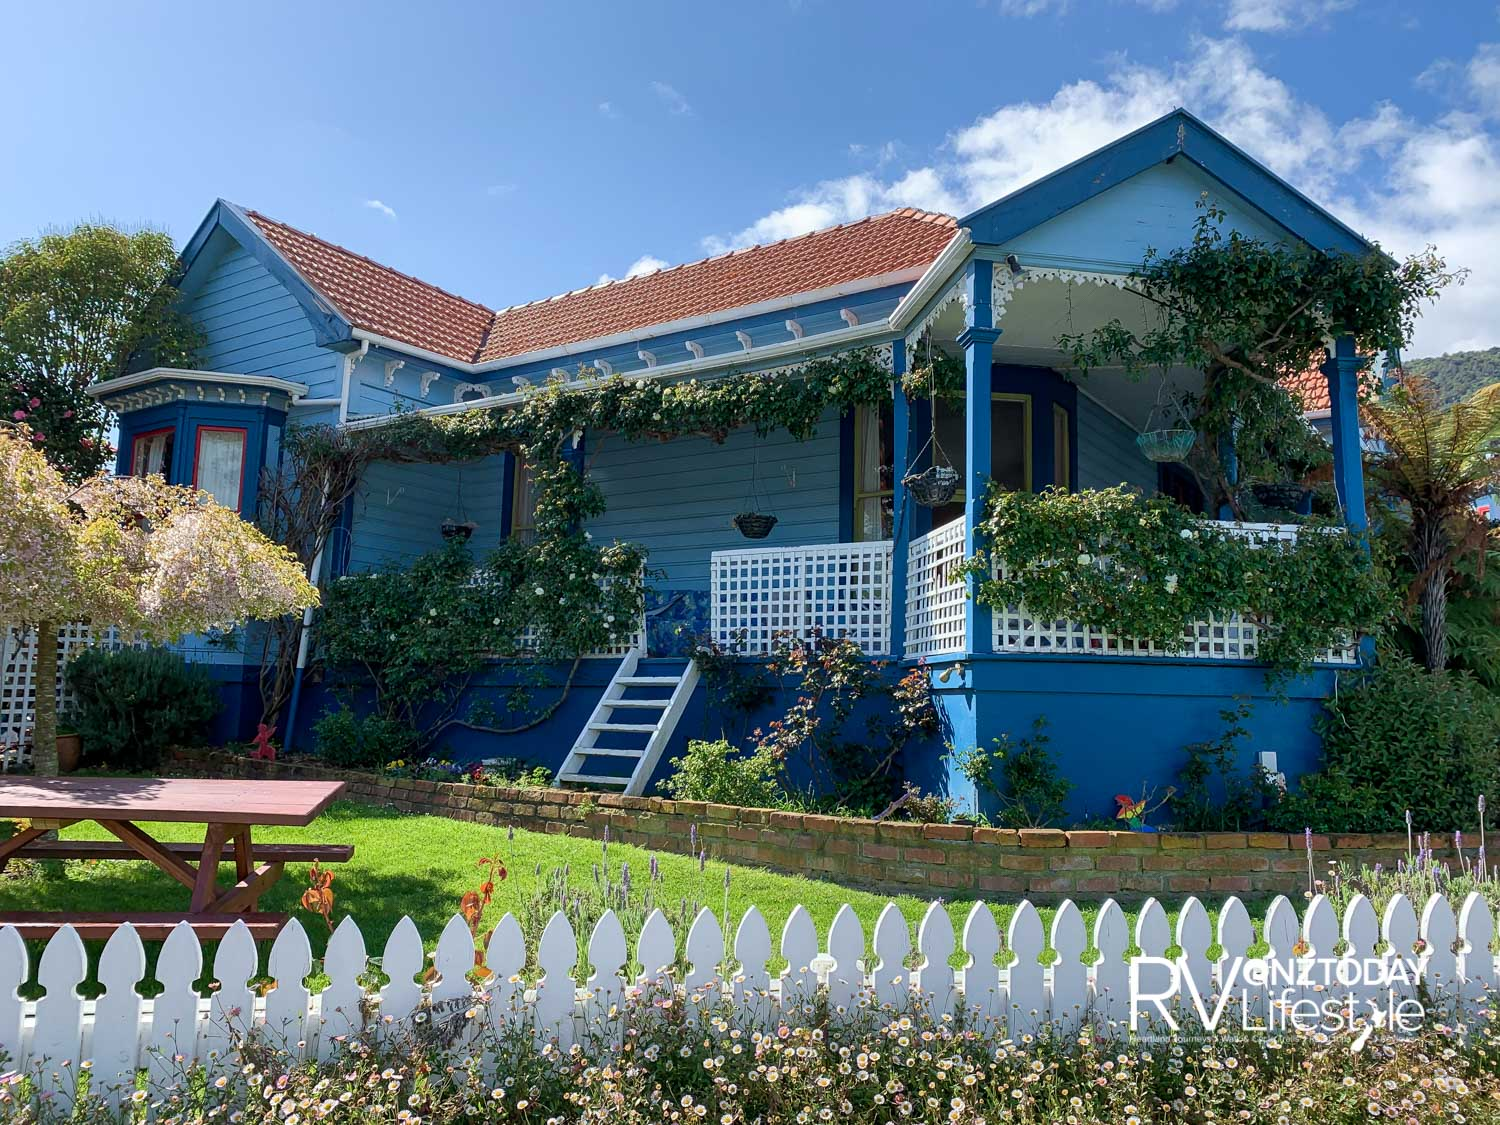 The former Presbyterian manse in Picton where the writer spent a childhood holiday — it's now a guest house